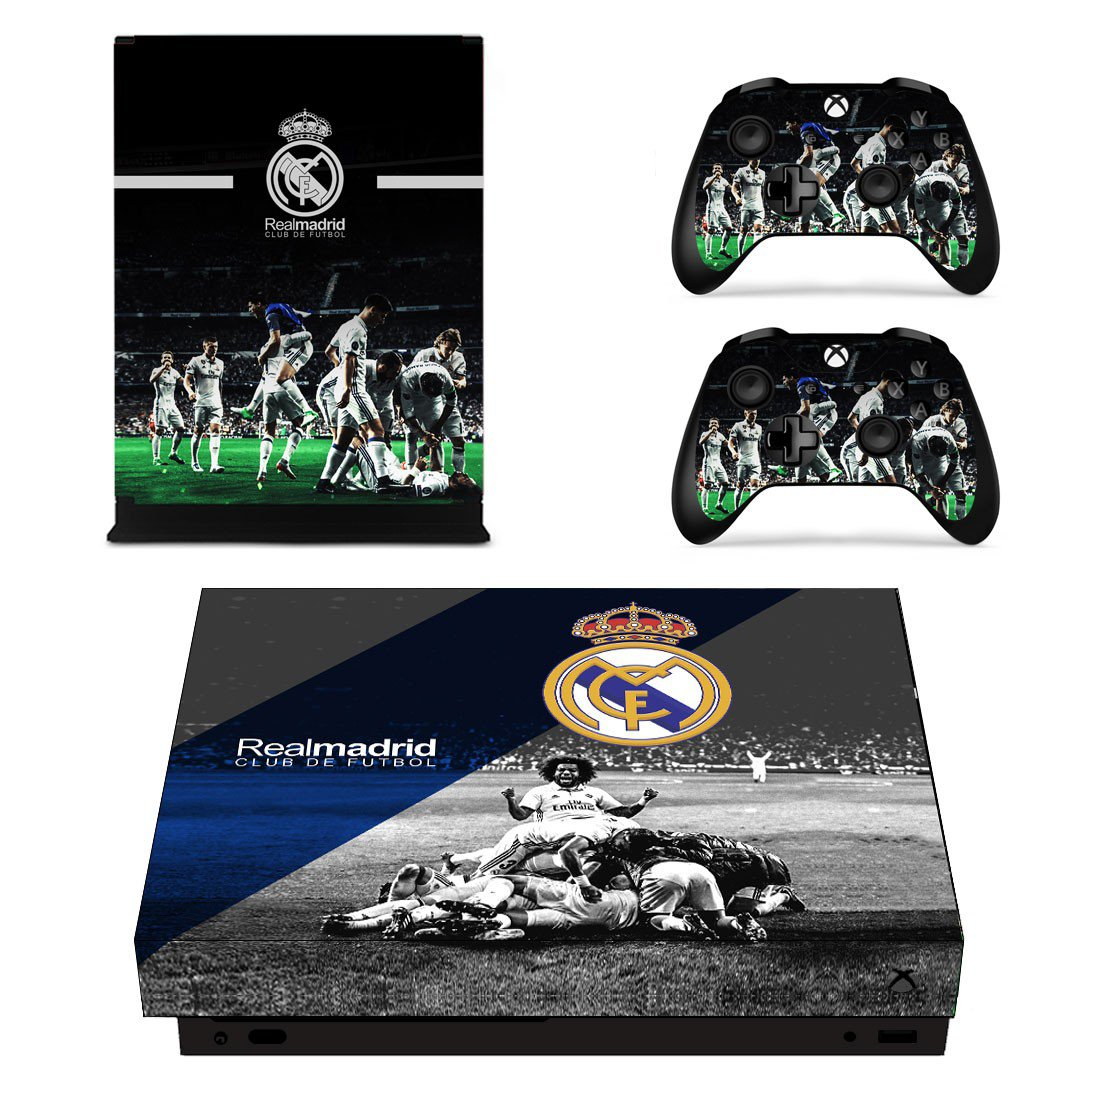 Real Madrid Decal Skin Sticker For Xbox One X Console And